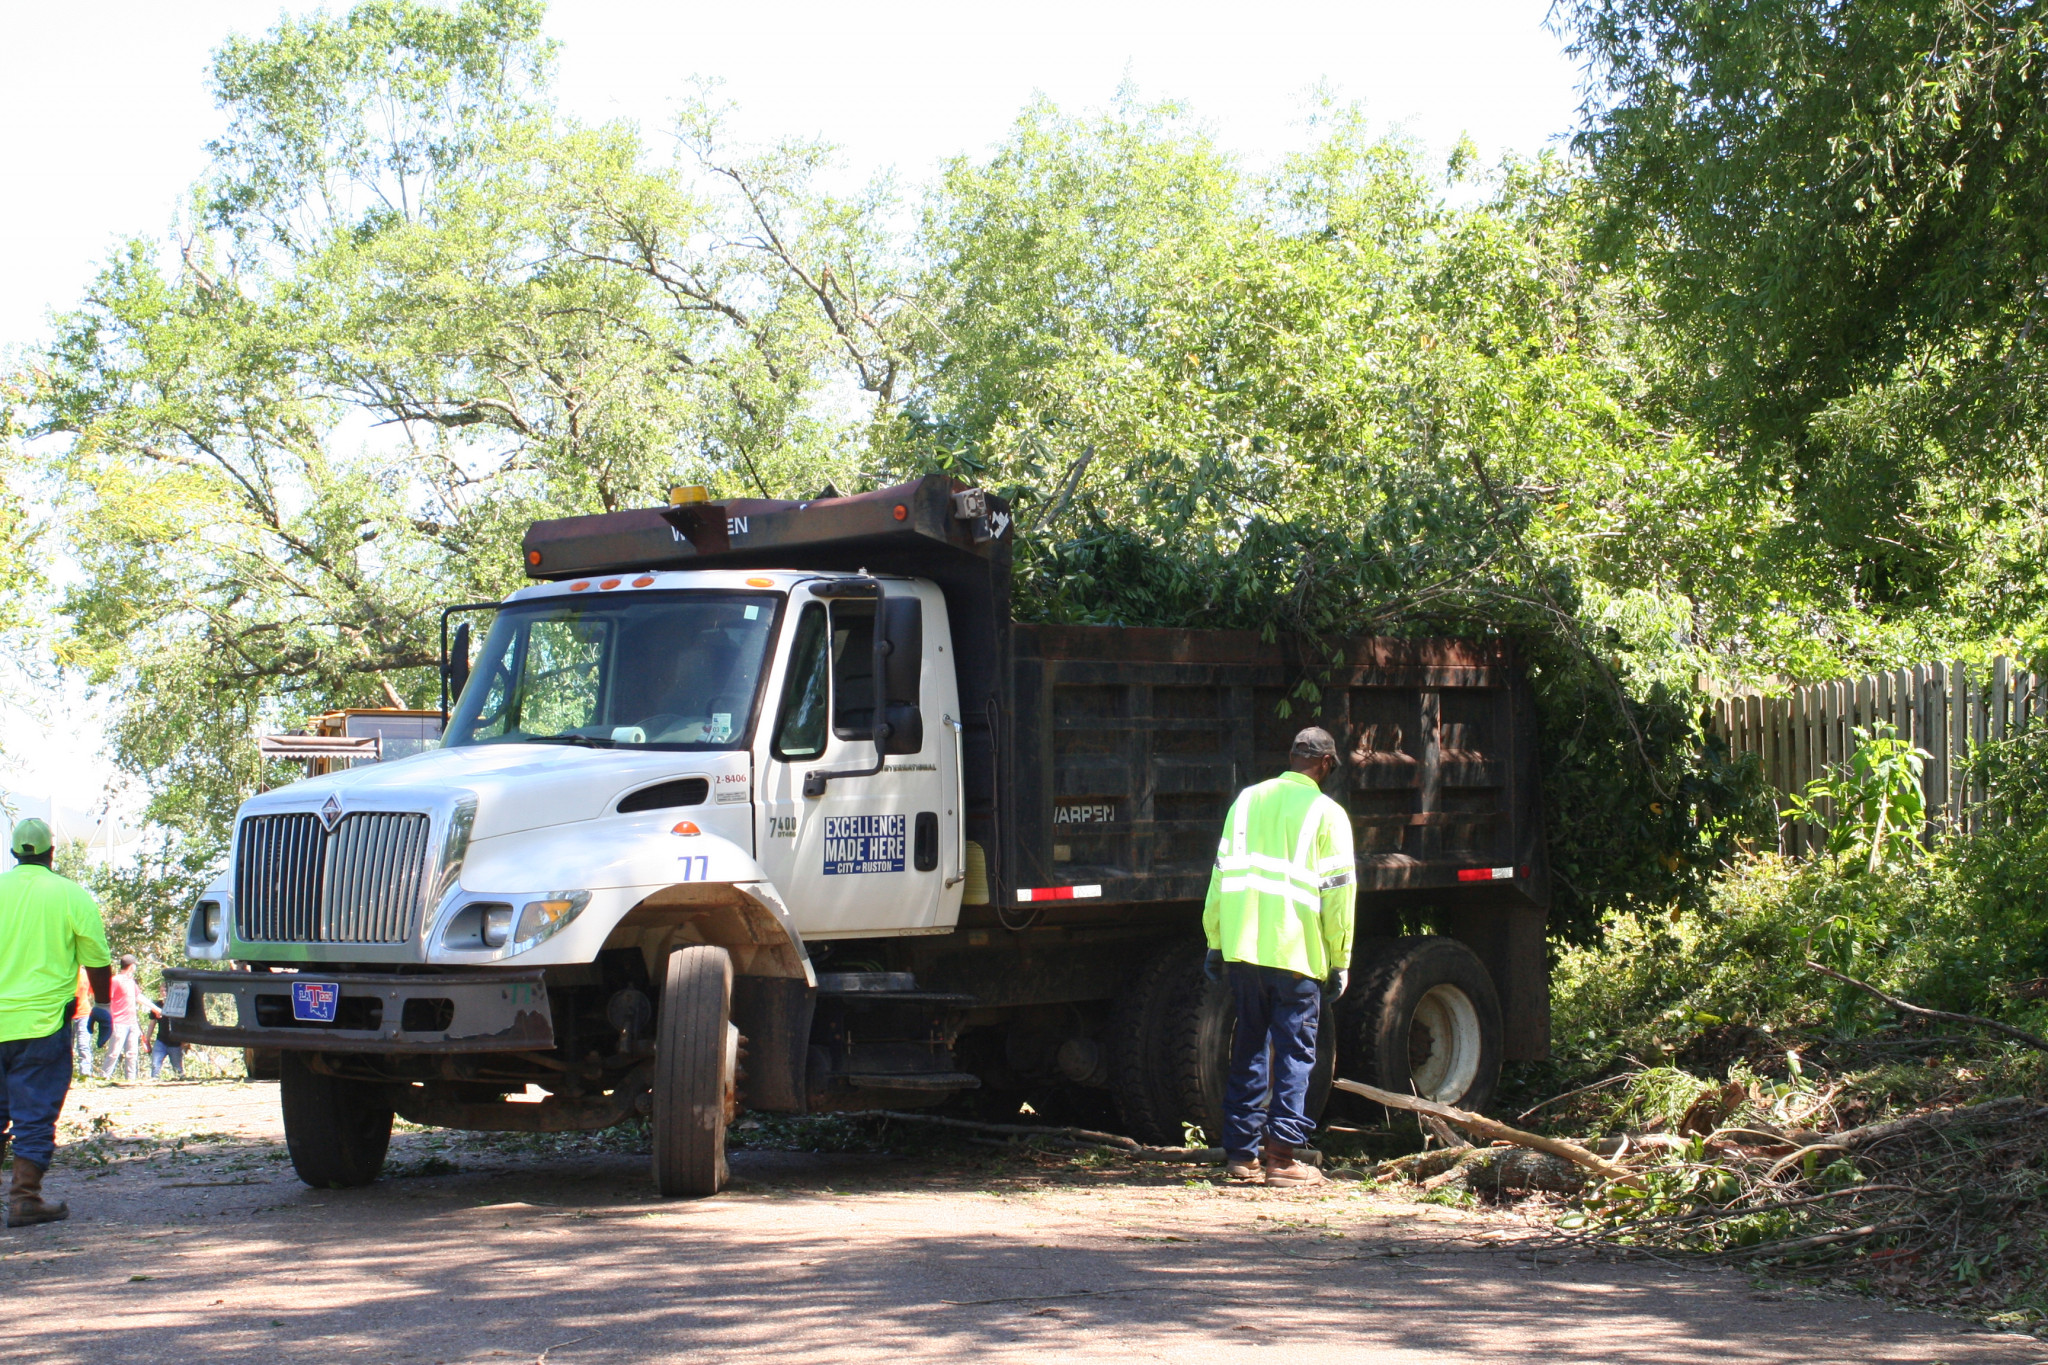 City of Ruston cleanup on Evans Street